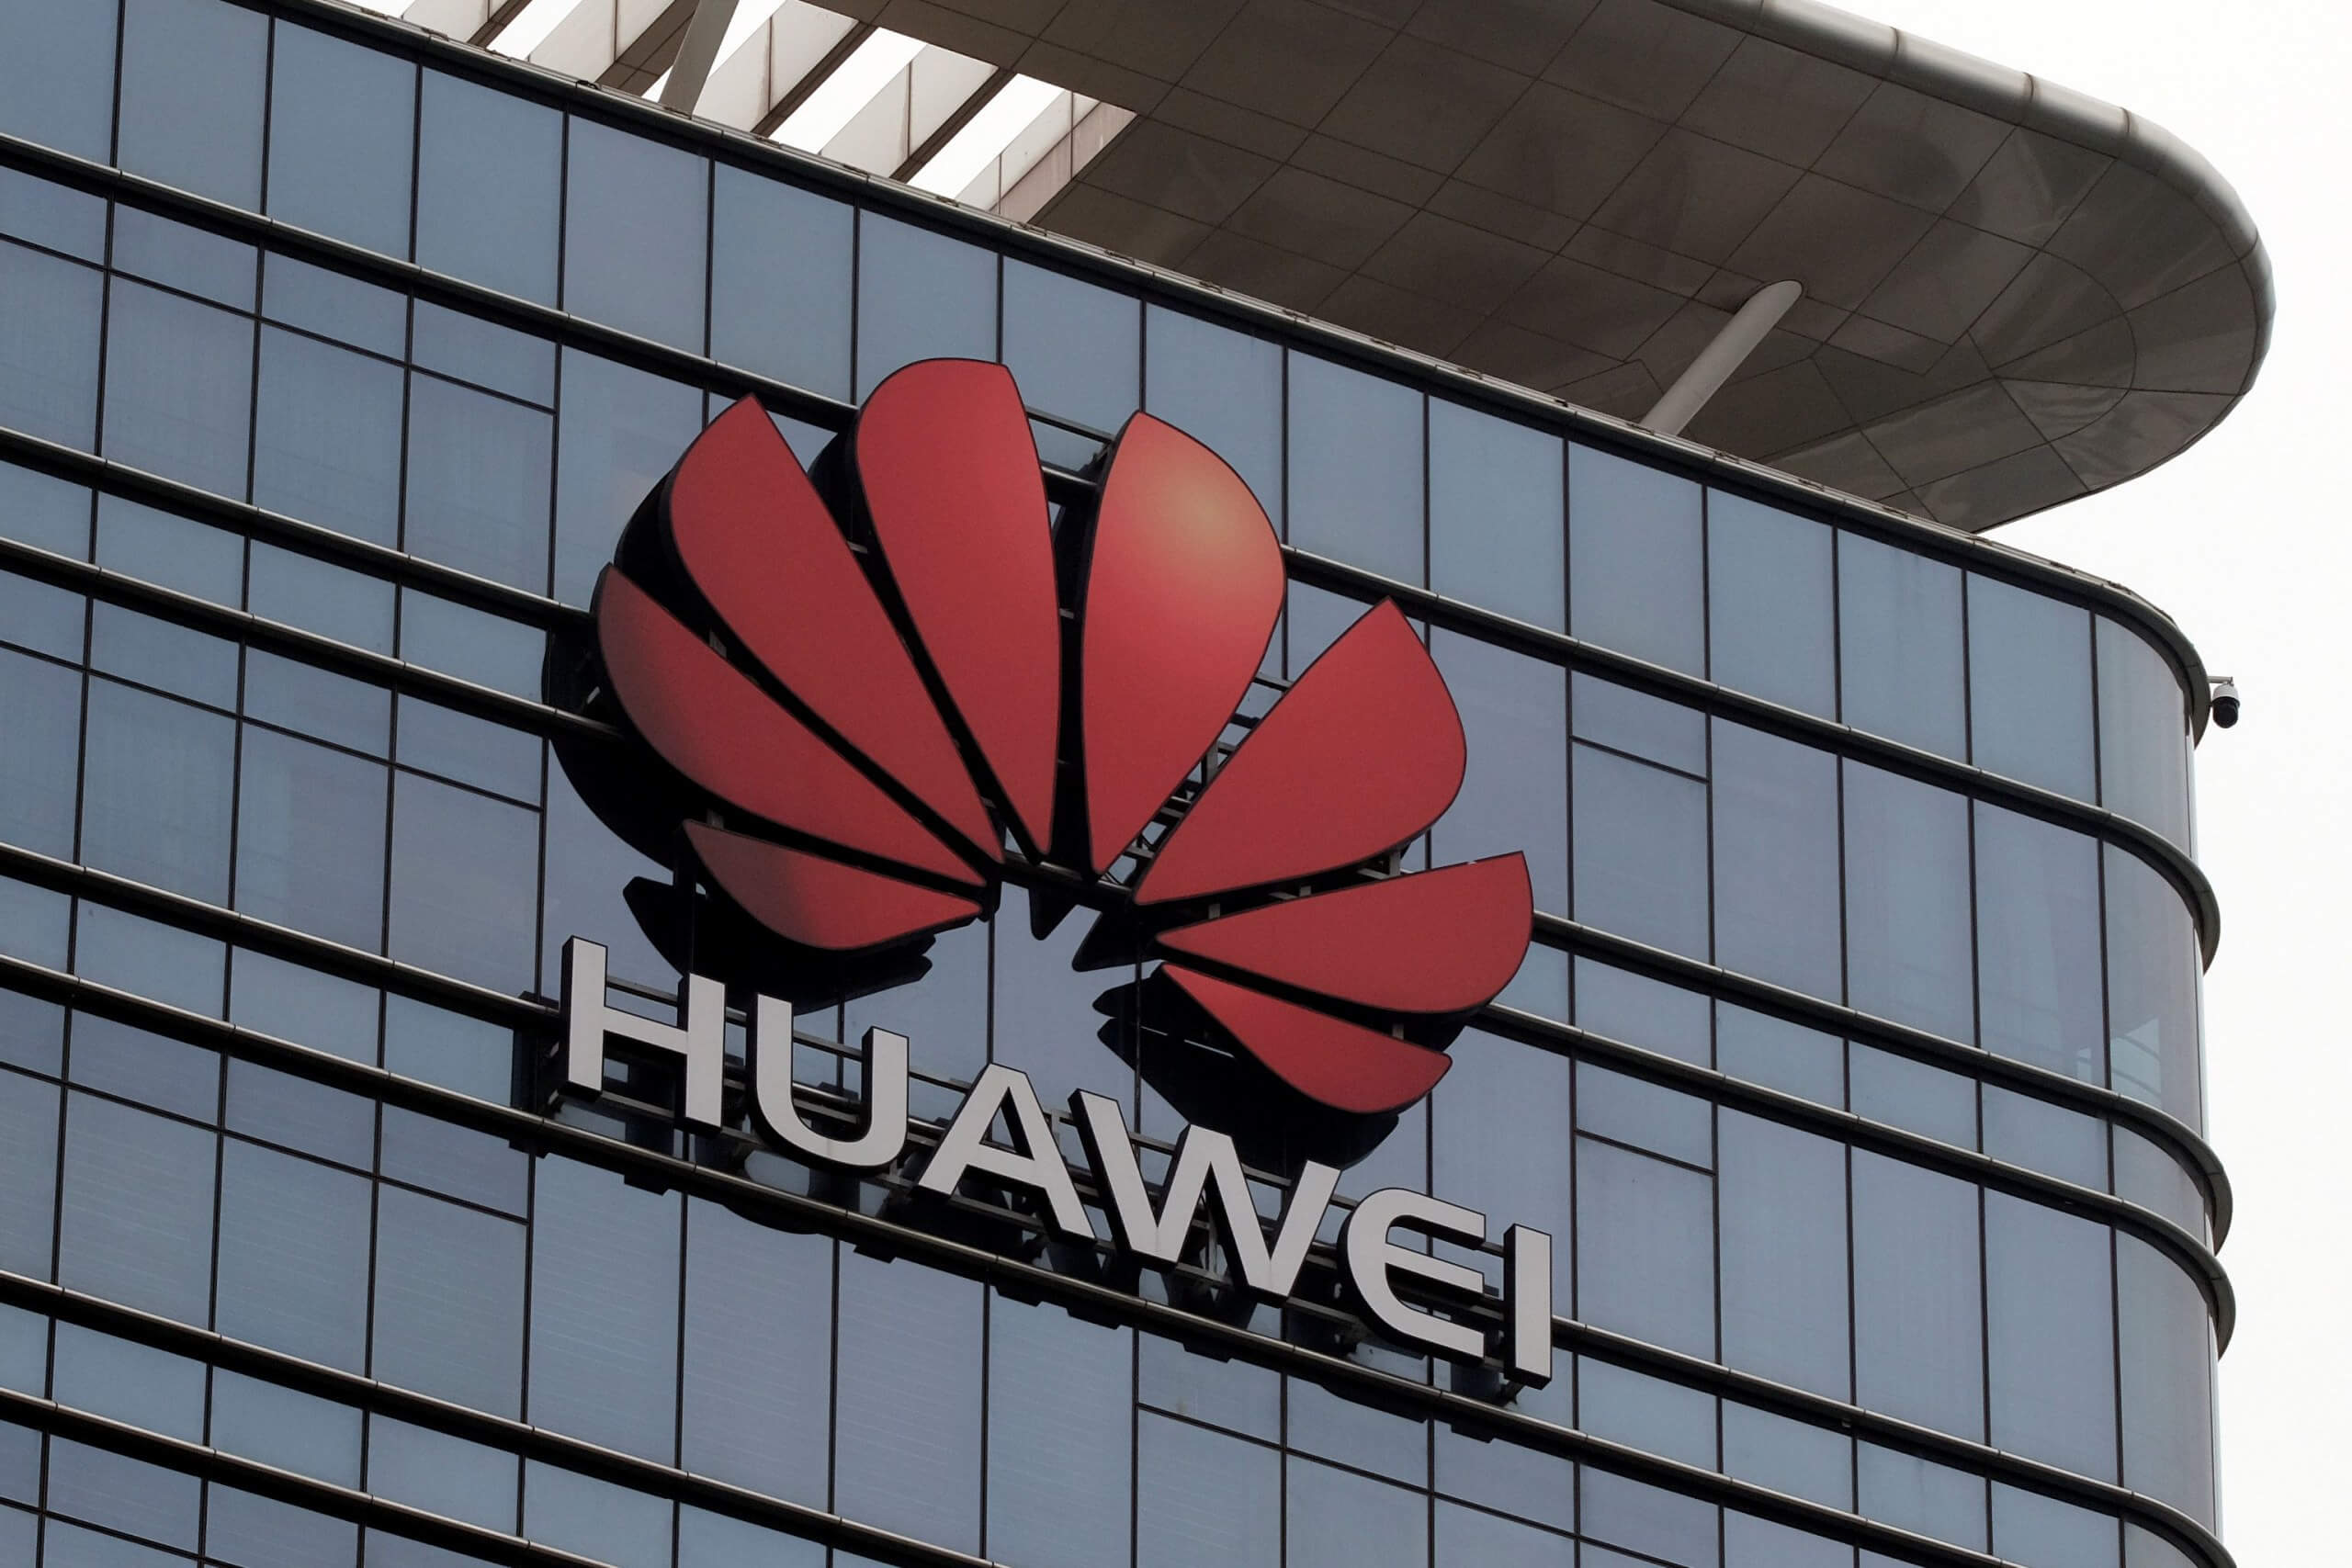 Huawei says vulnerabilities discovered by Vodafone were 'weaknesses,' not 'hidden backdoors'